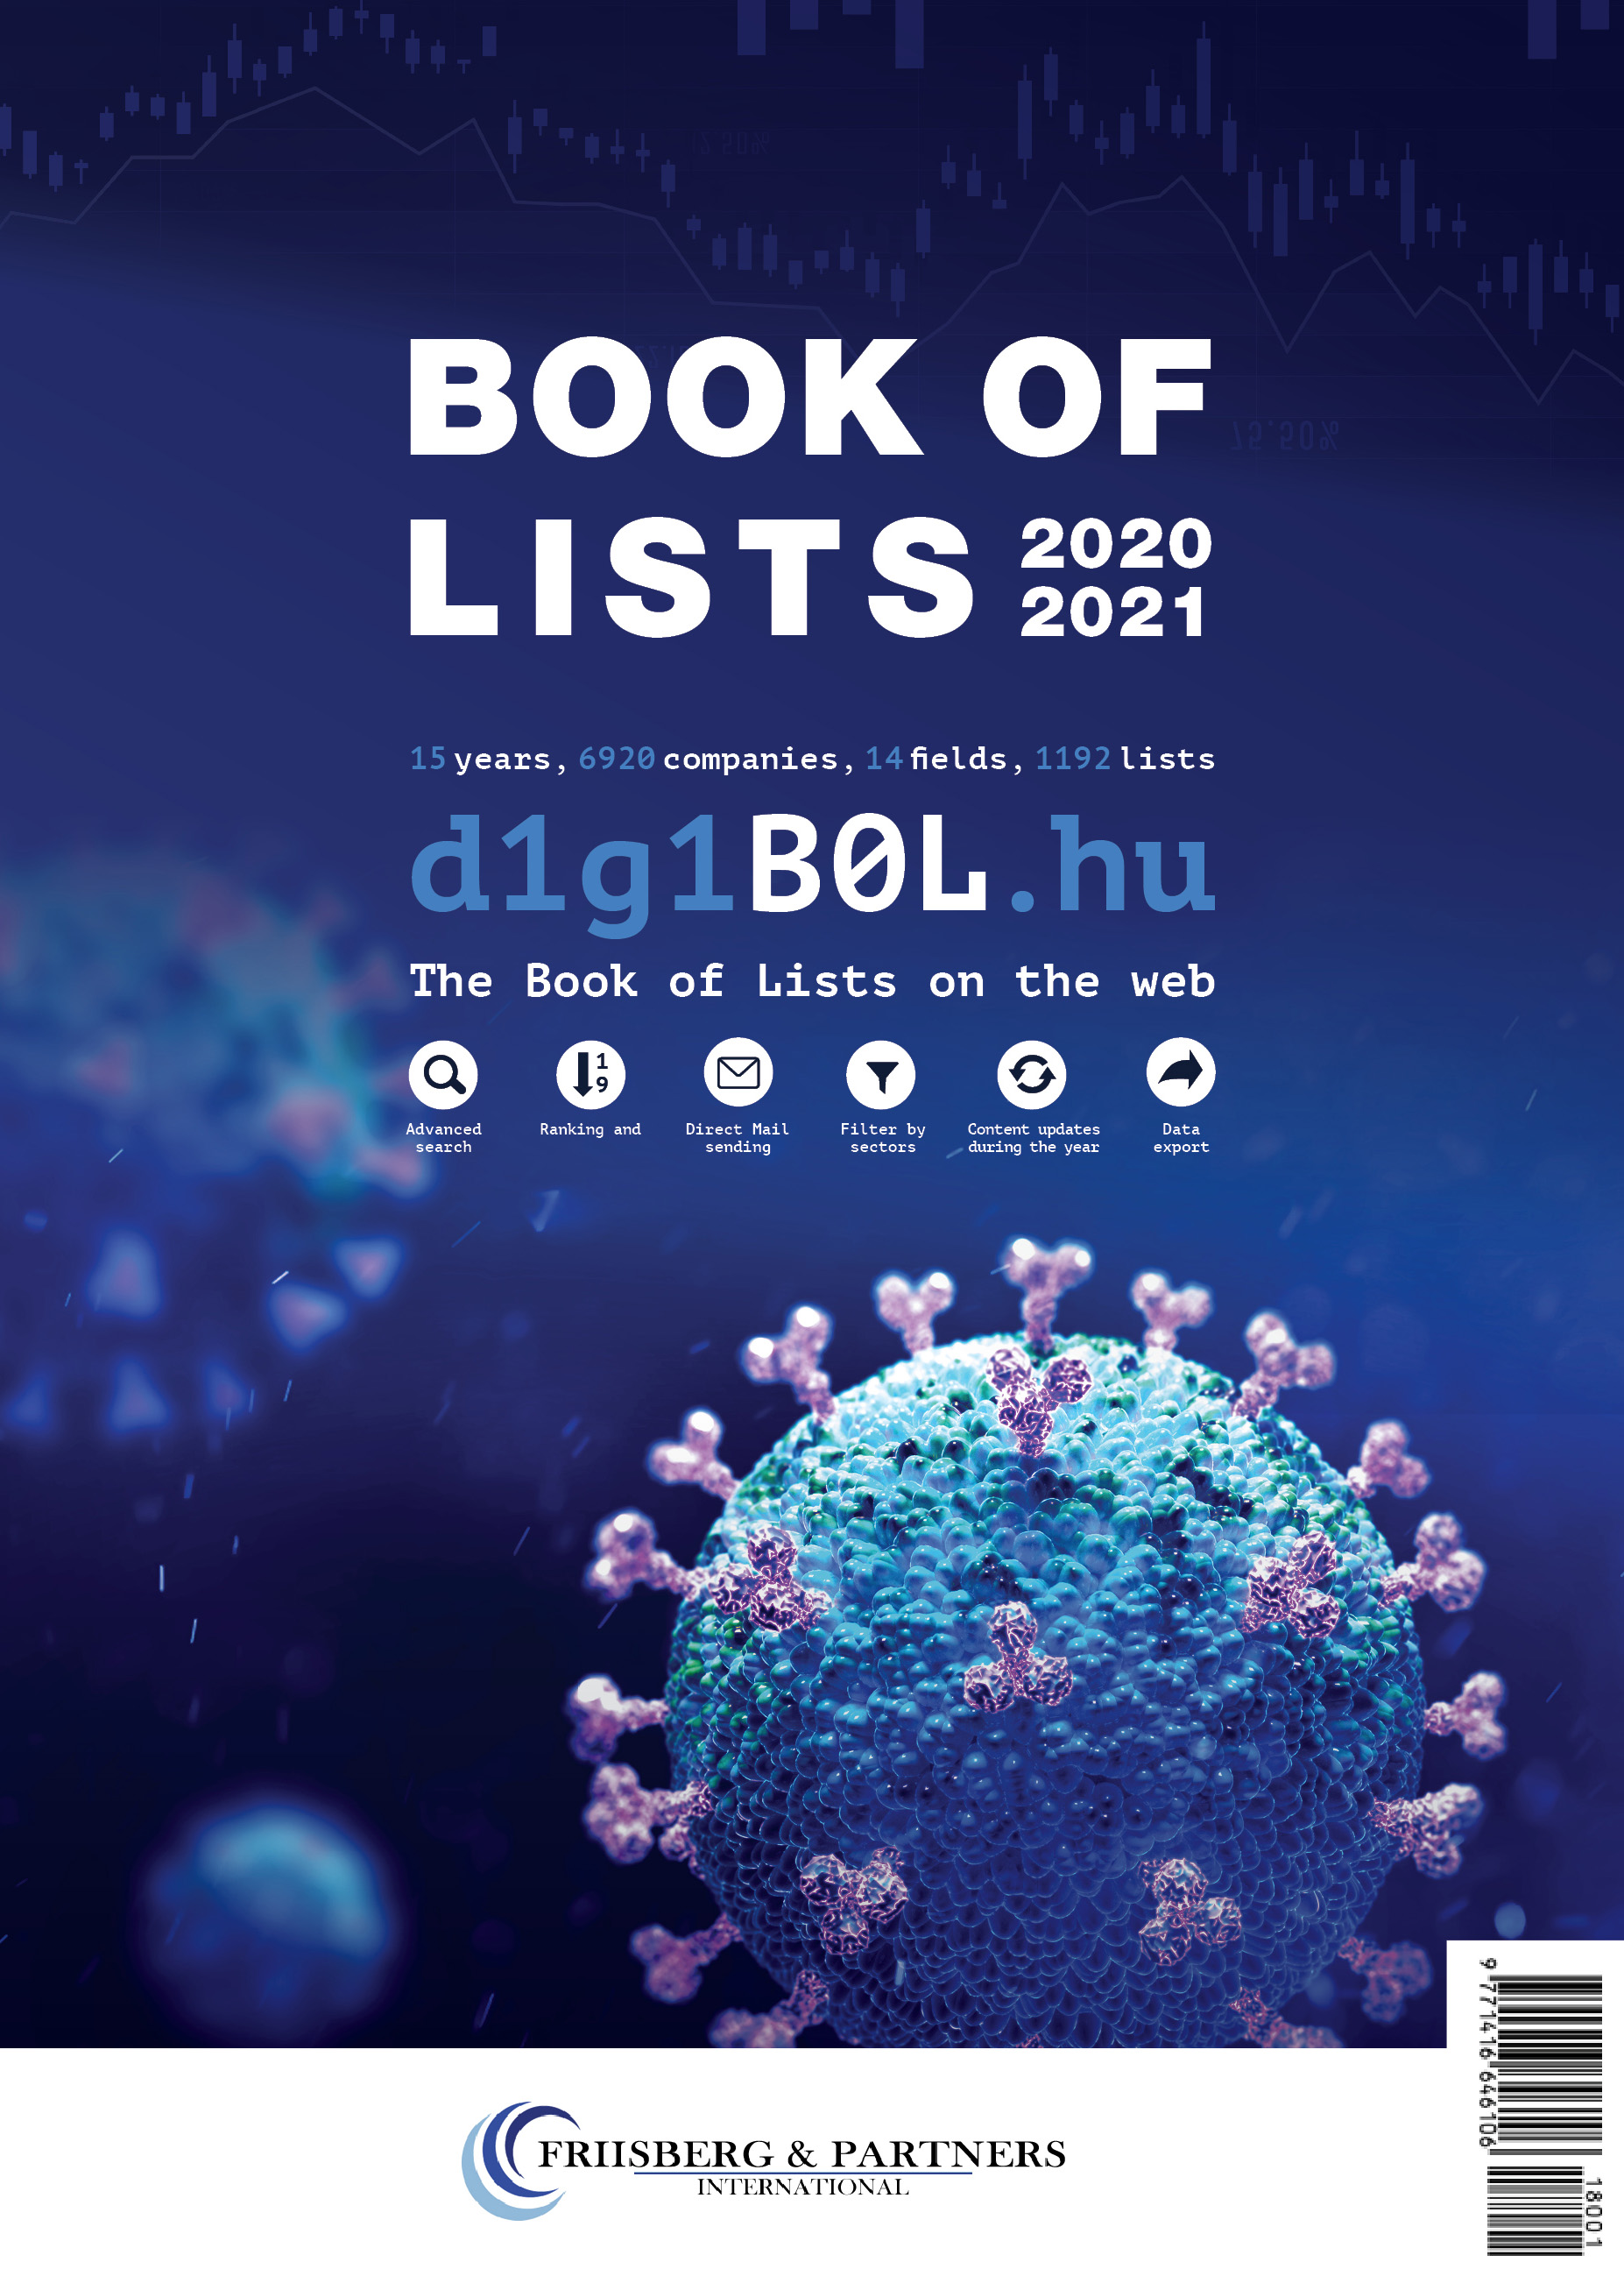 Book of Lists 2020-2021